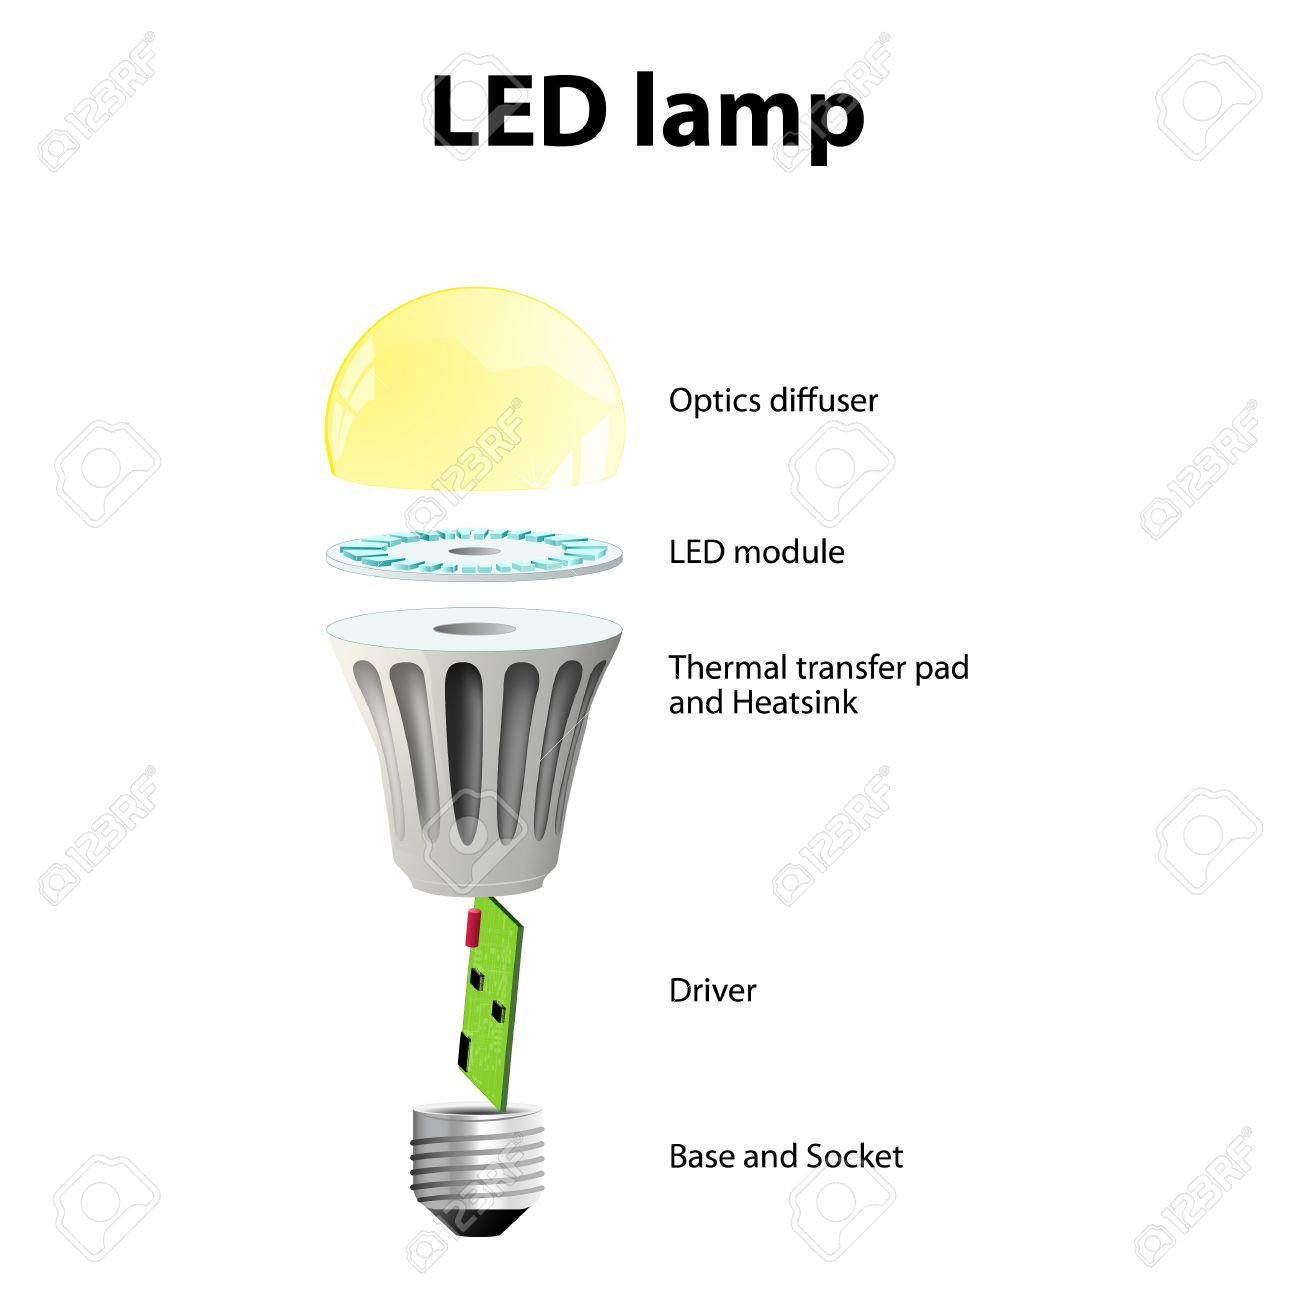 hight resolution of diagram showing the parts of a modern led lamp labeled royalty free diagram showing the parts